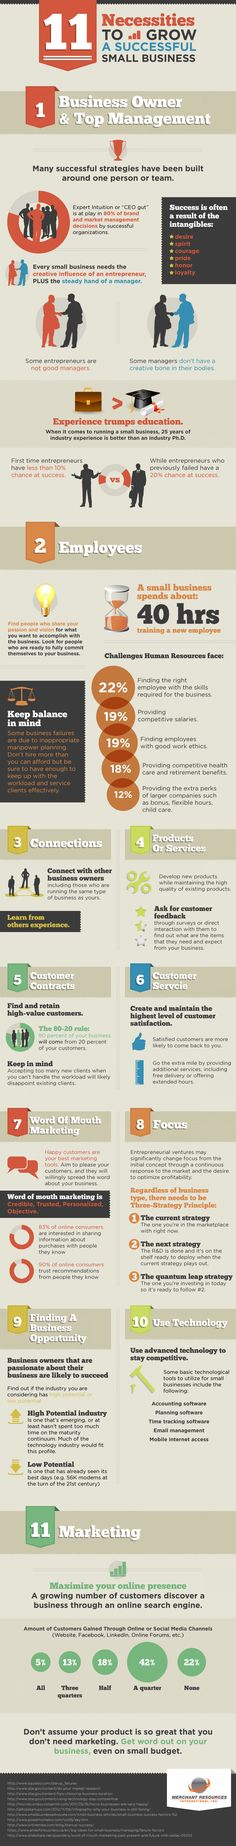 11 Must-Haves To Grow A Successful Business